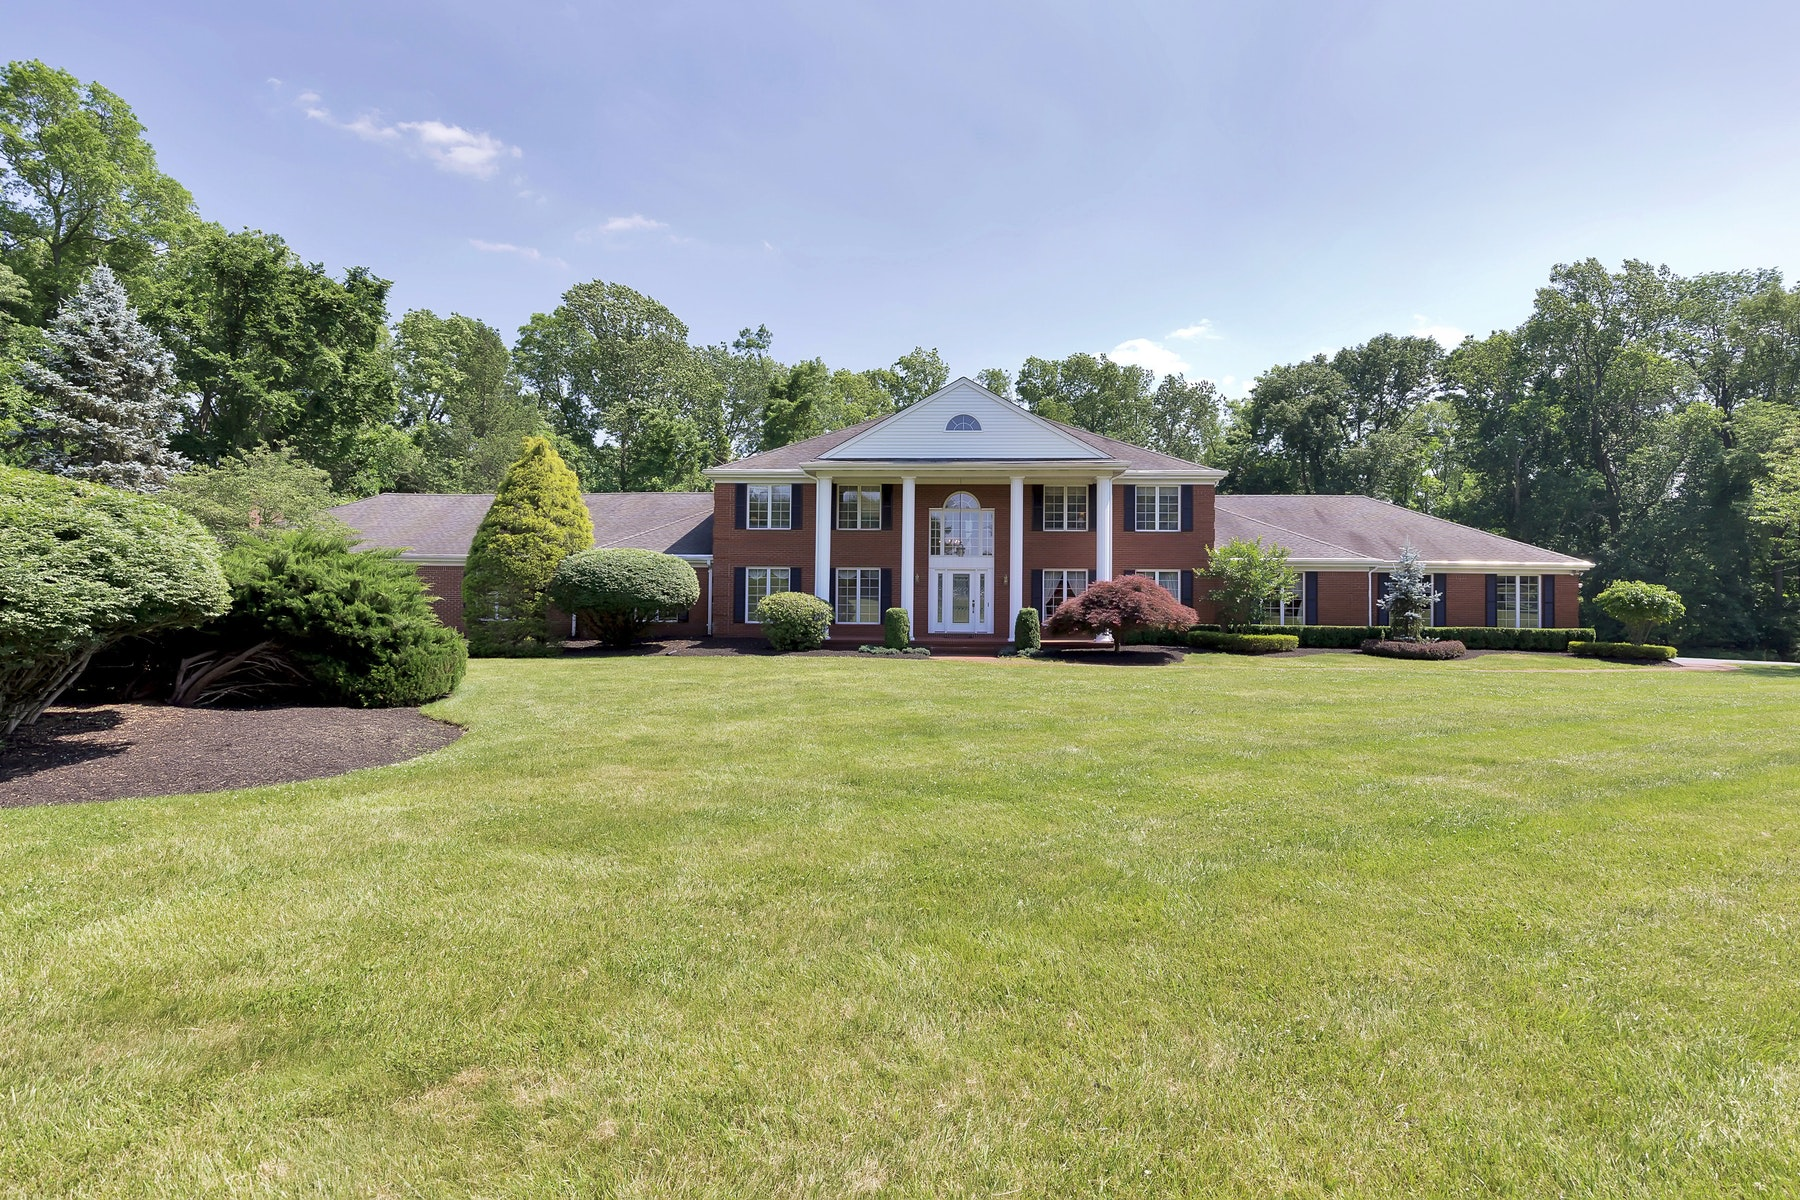 Single Family Home for Sale at 31 Paddock Lane Colts Neck, New Jersey 07722 United States